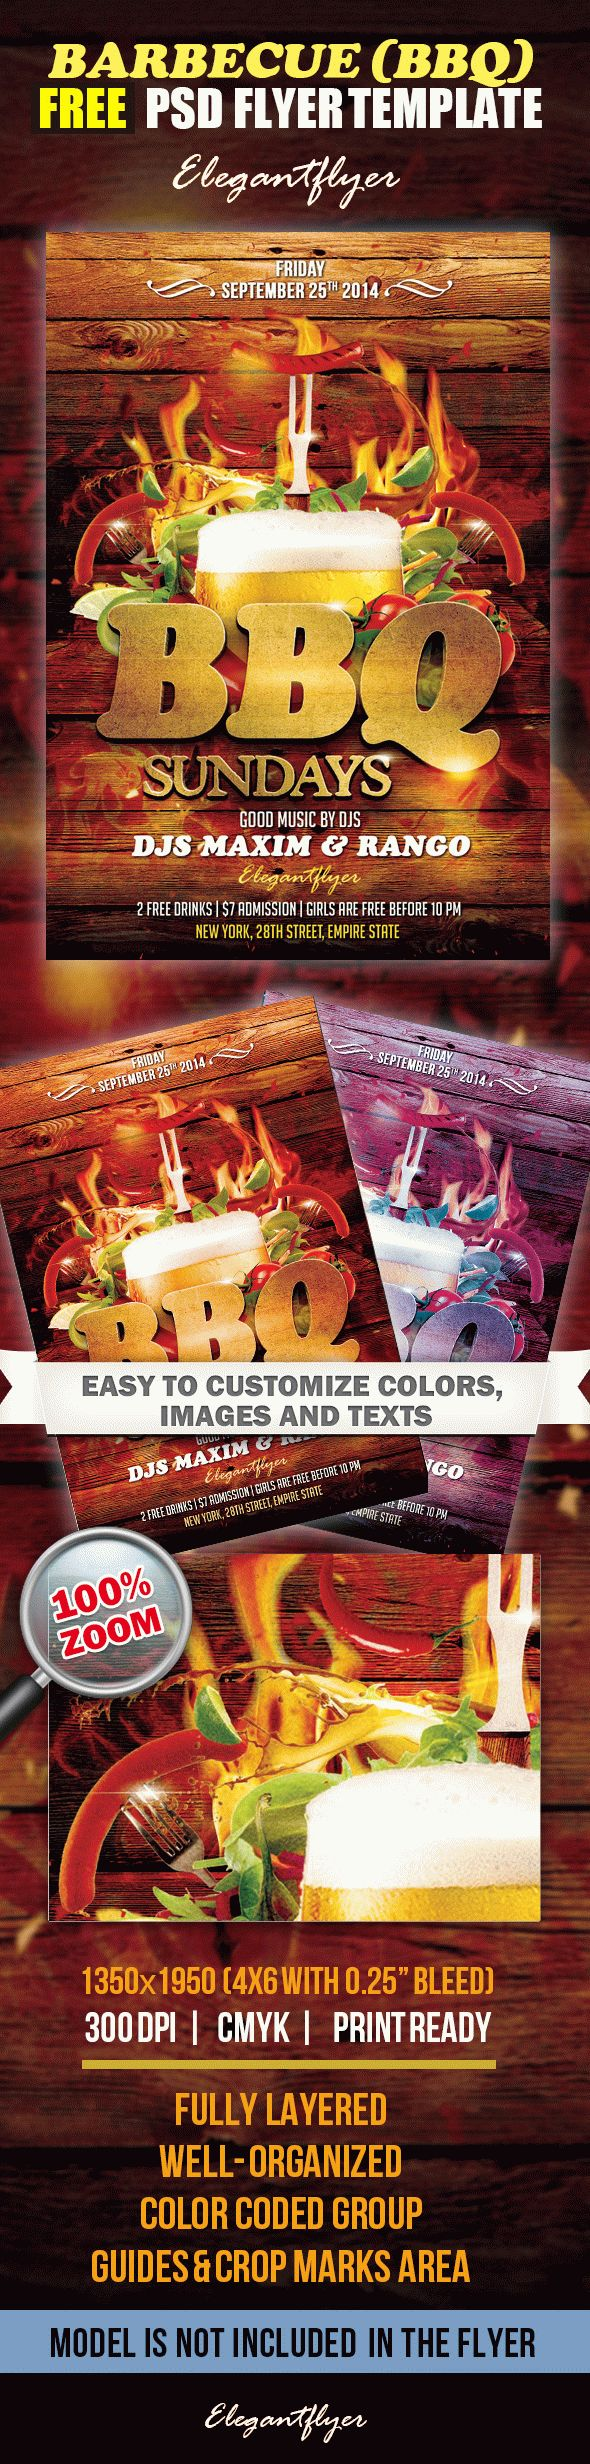 barbecue bbq   u2013 free flyer psd template  u2013 by elegantflyer